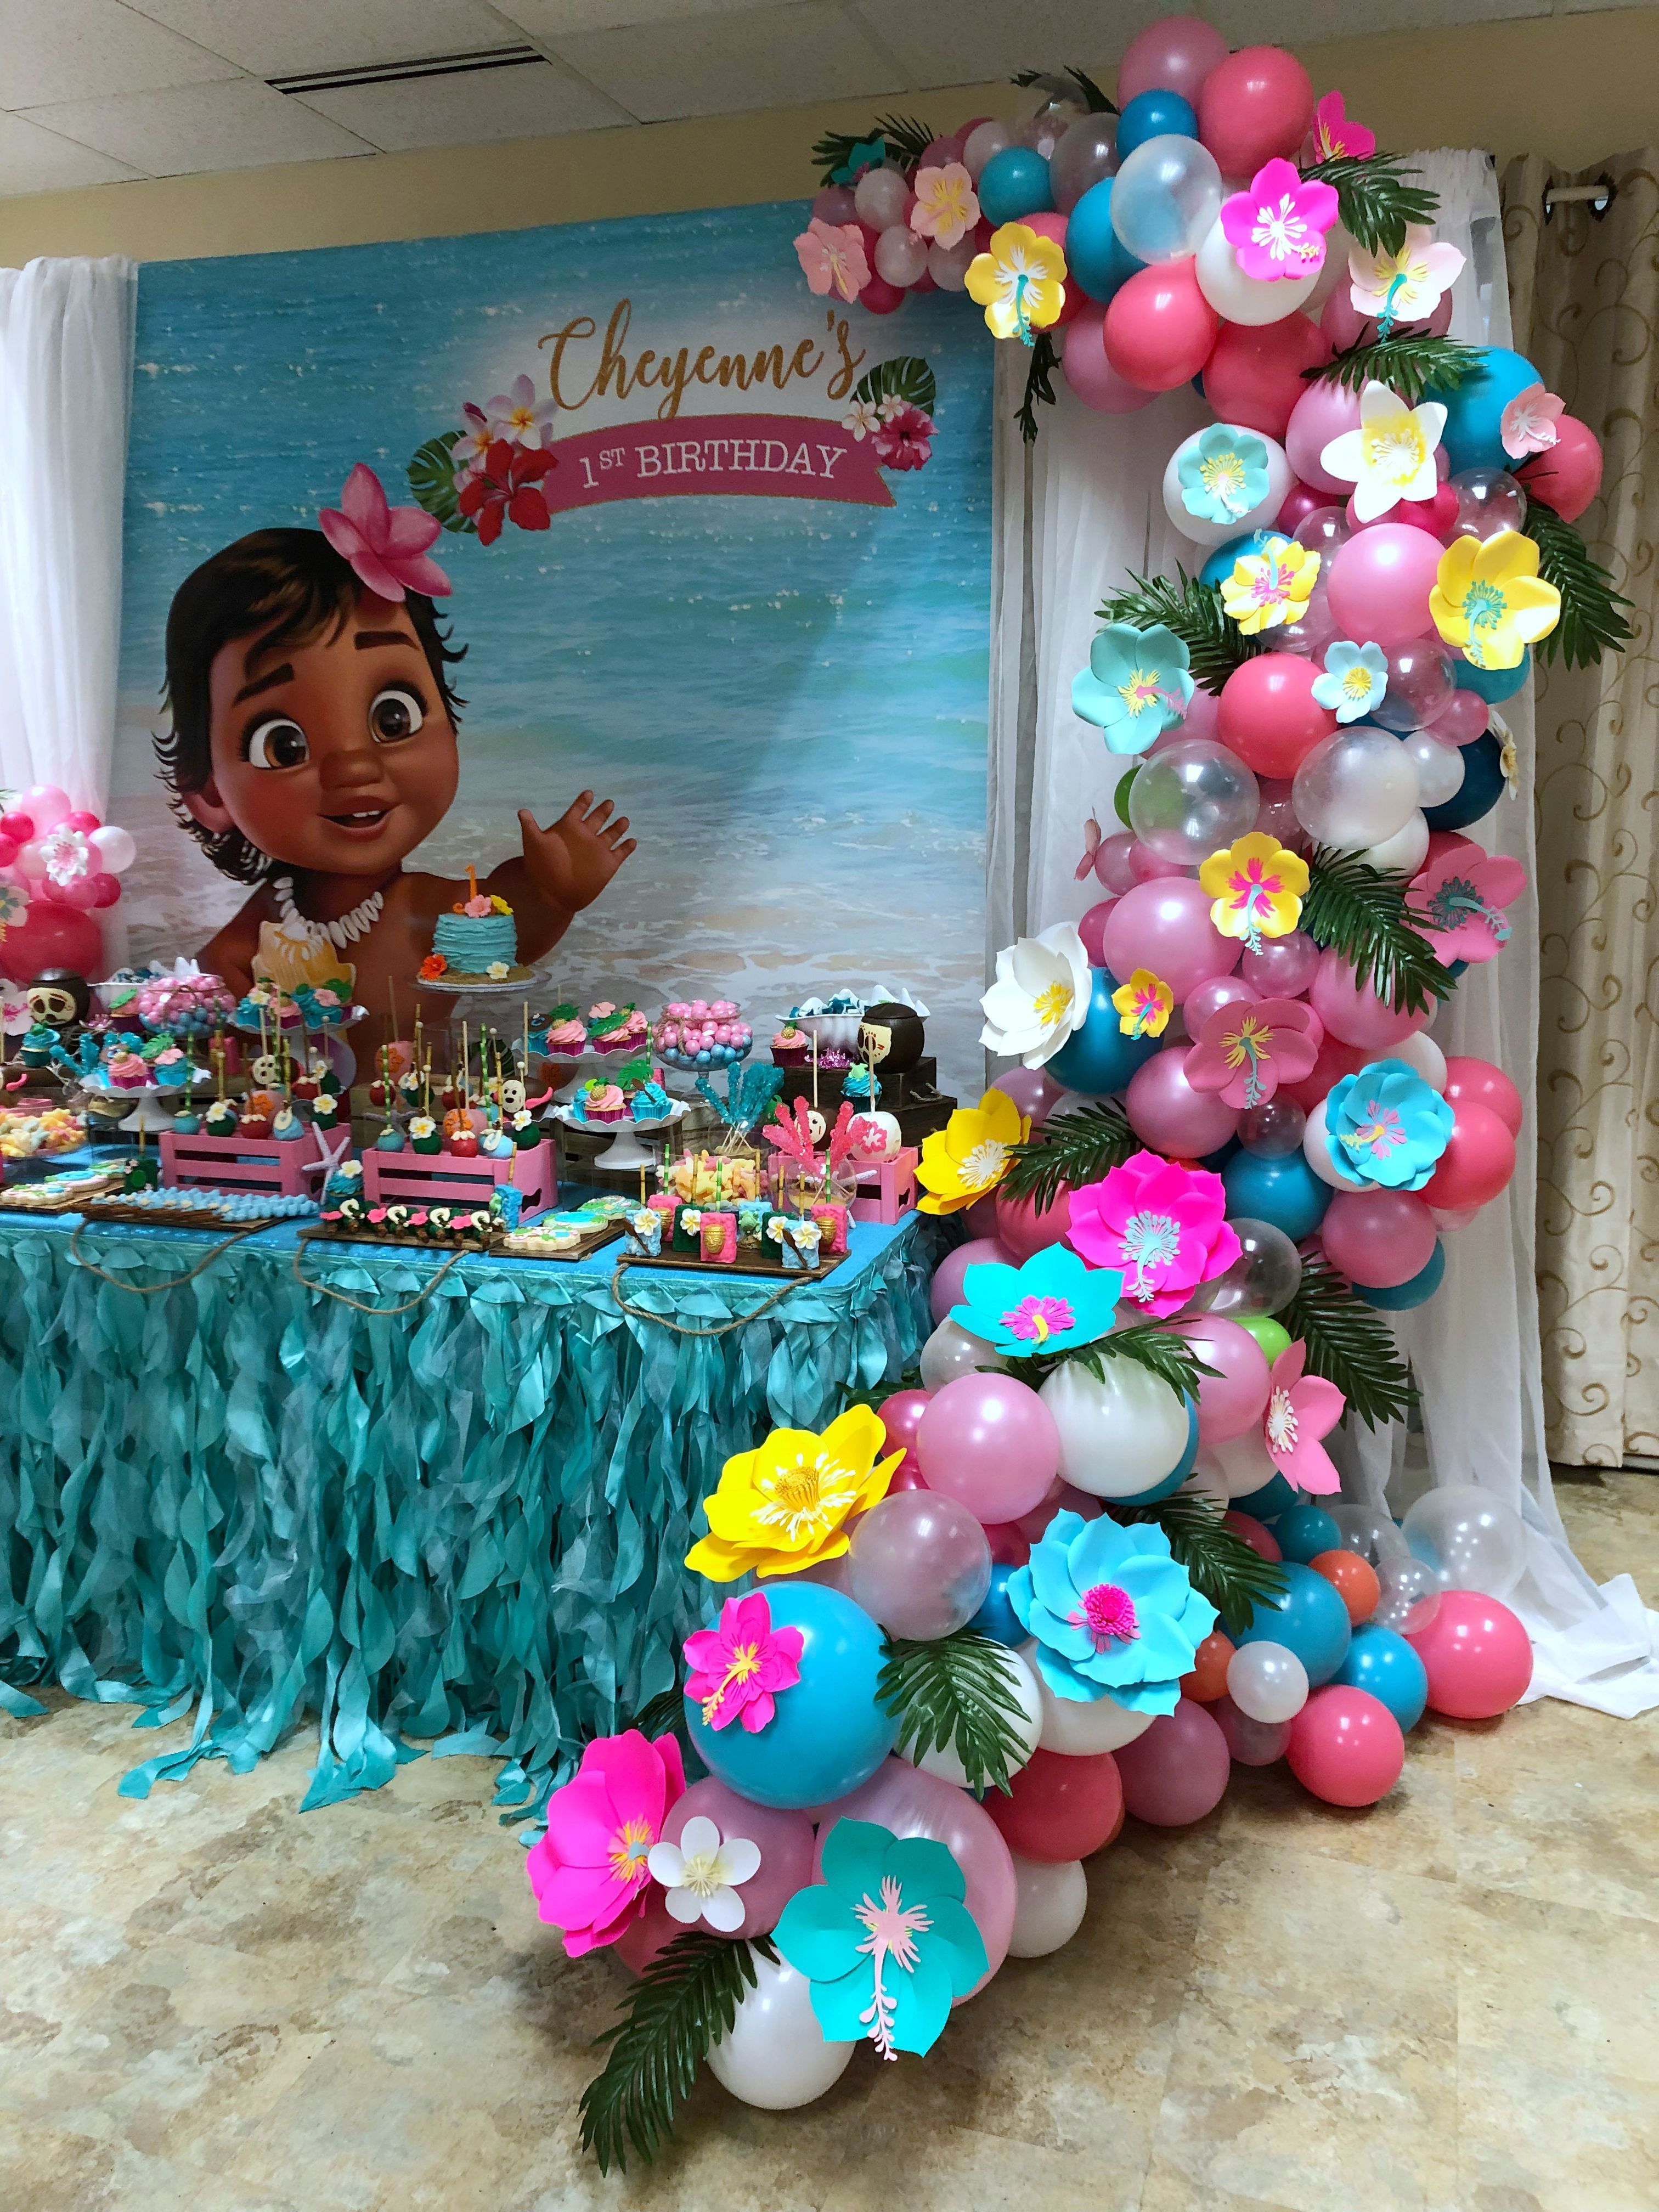 Moana themed balloon garland with paper flowers by paperbloomtwist cake sweet table styled decorationsdiy st birthday also best cumple tematicos images in rh pinterest